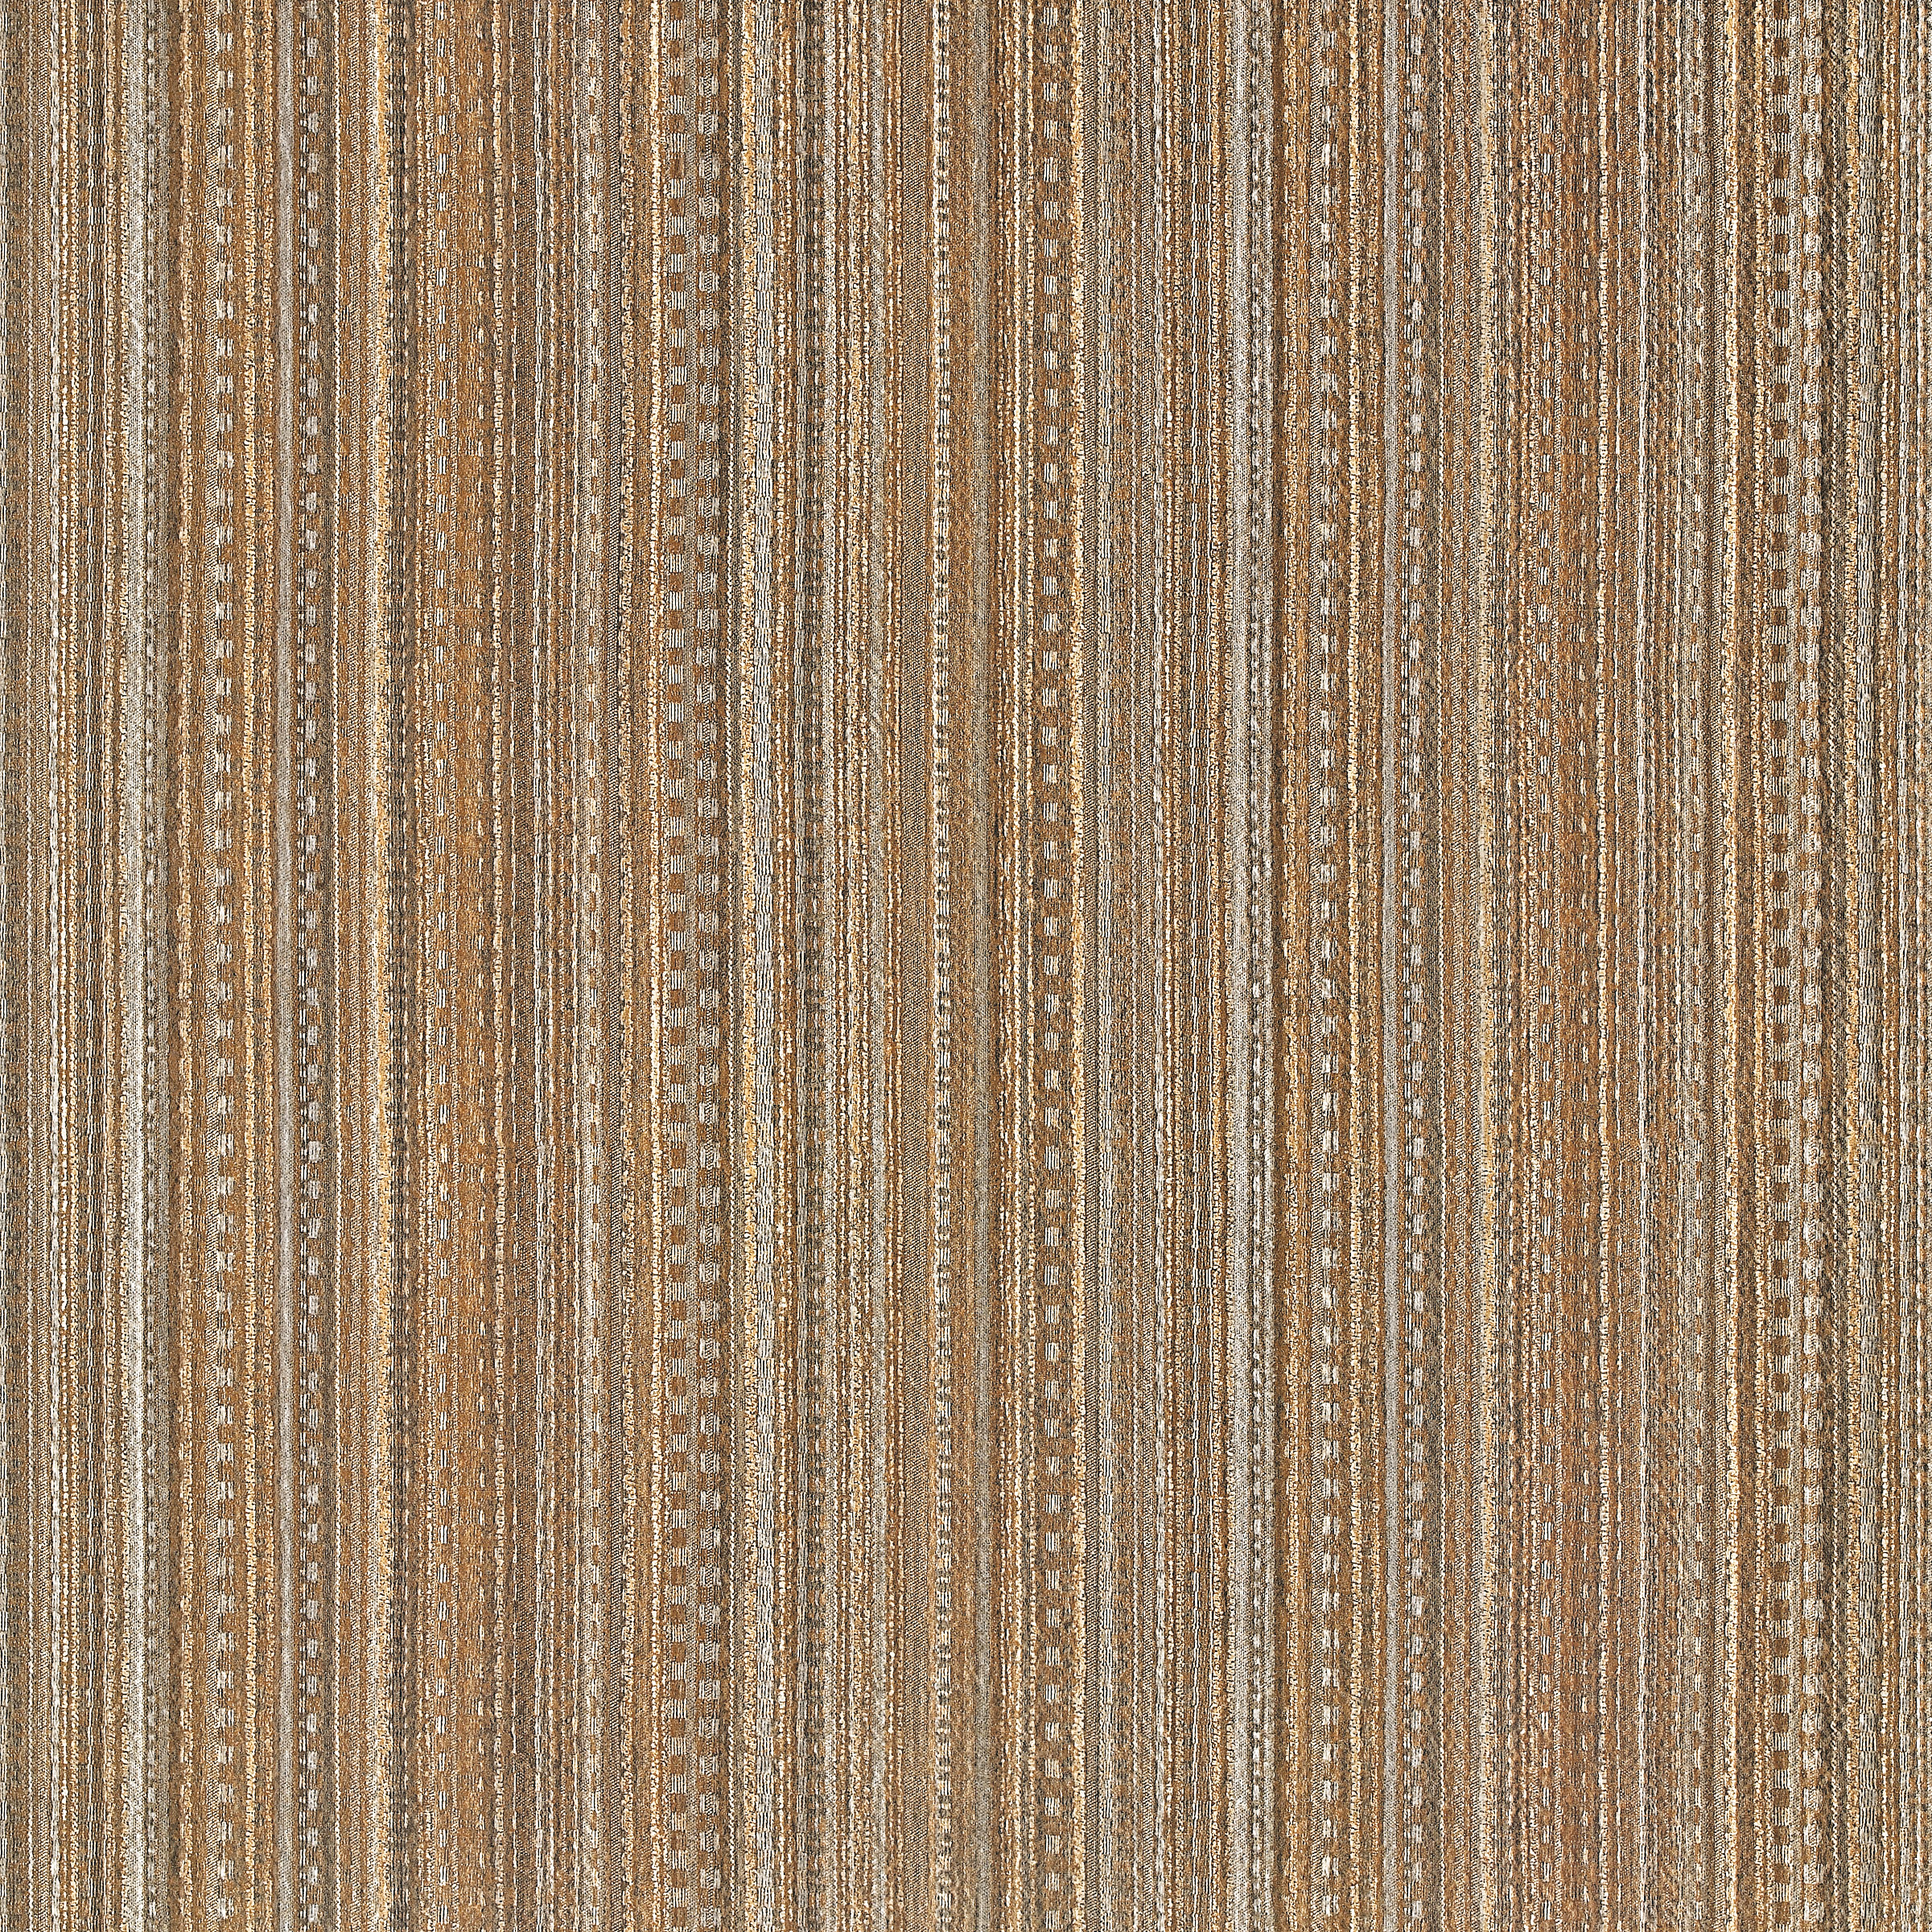 Porcelain Tile   Carpet Series - HSLCT66317   by Hospitality Finishes